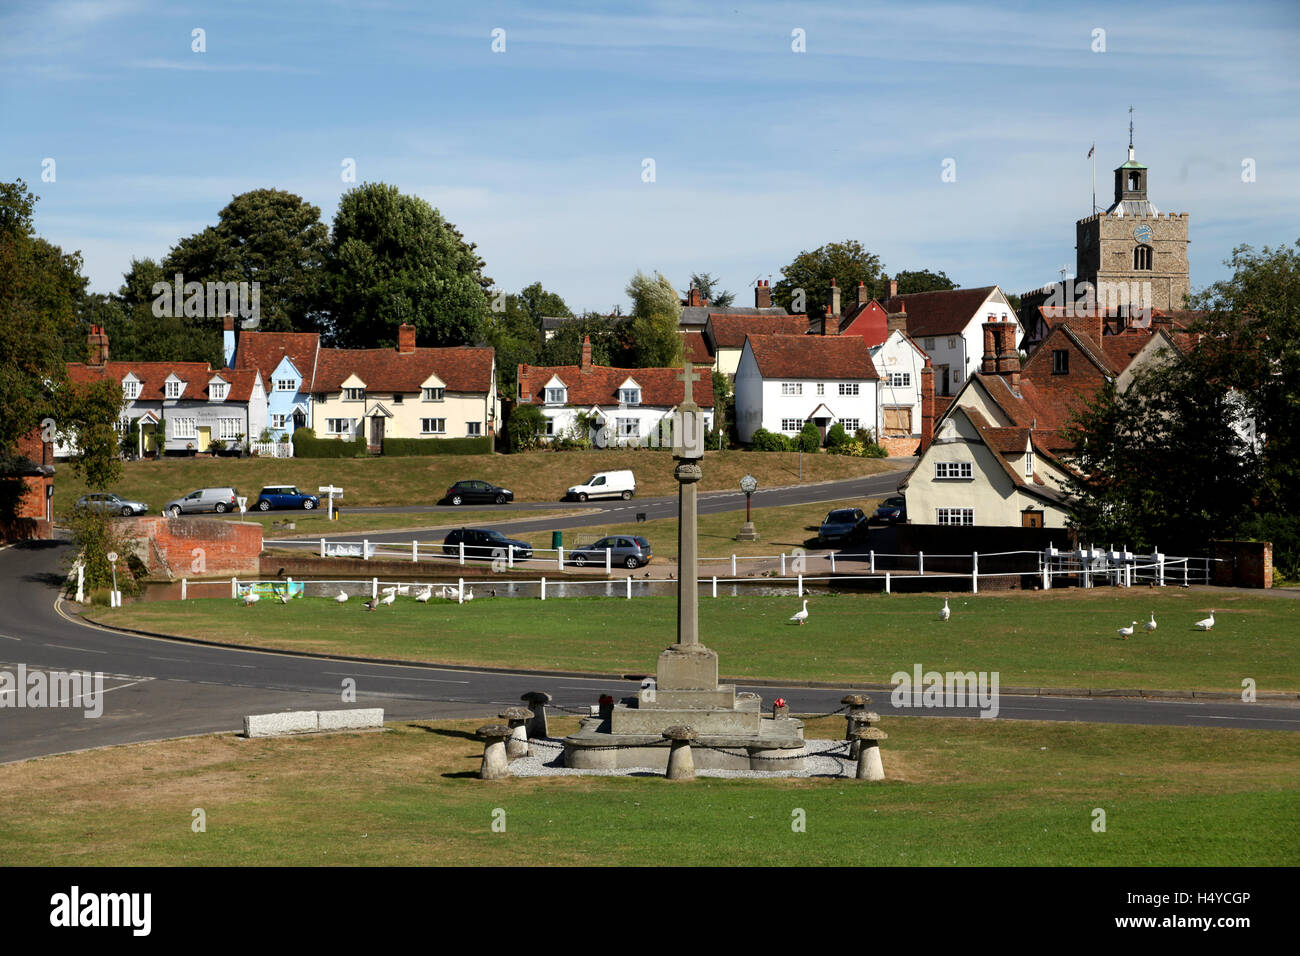 The village of Finchingfield is said by some to be the prettiest in Essex and most photographed in England - Stock Image